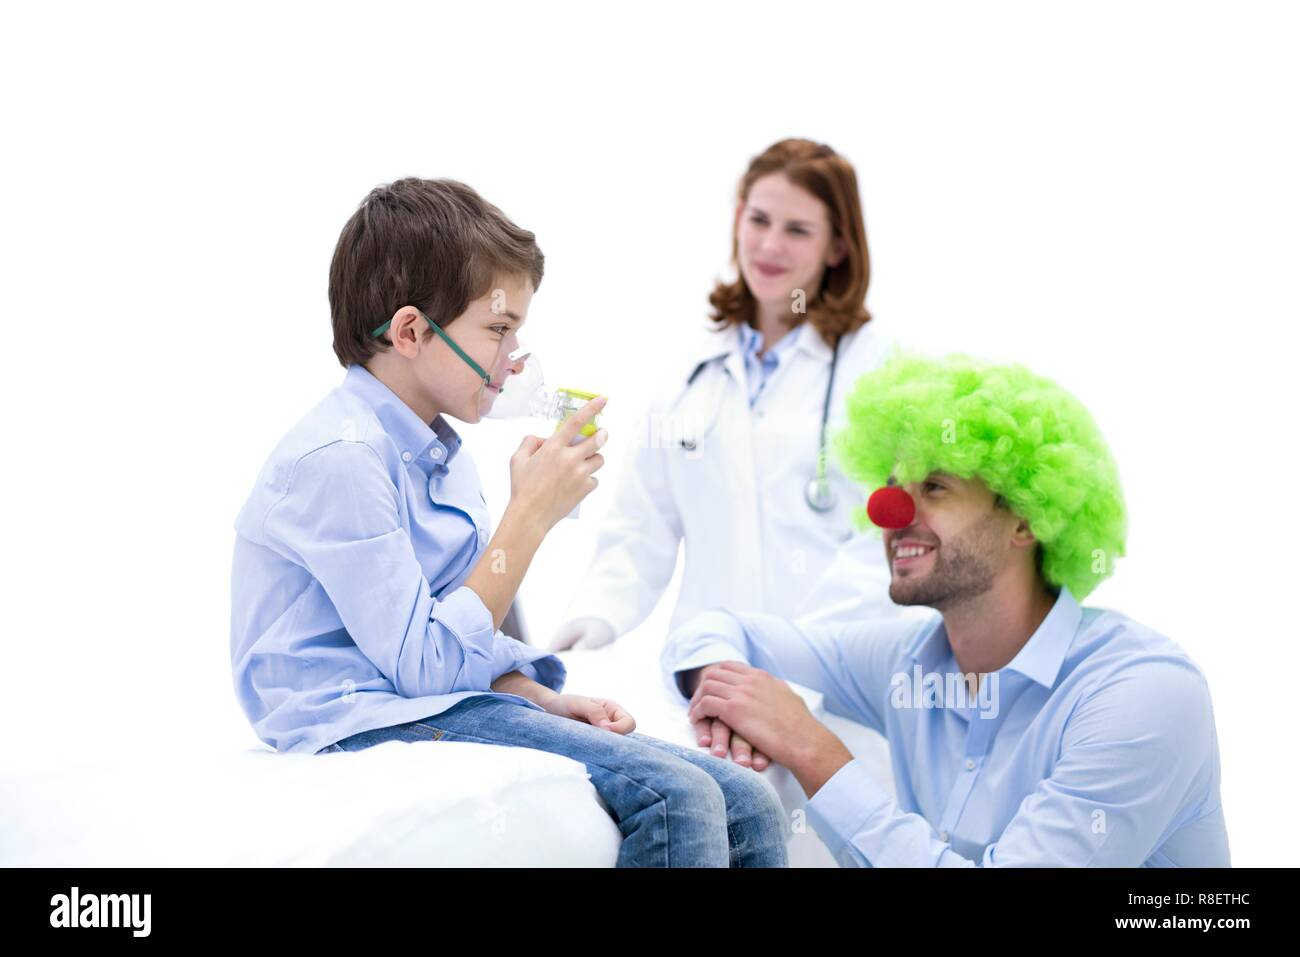 Boy using nebuliser with doctor dressed as clown. - Stock Image